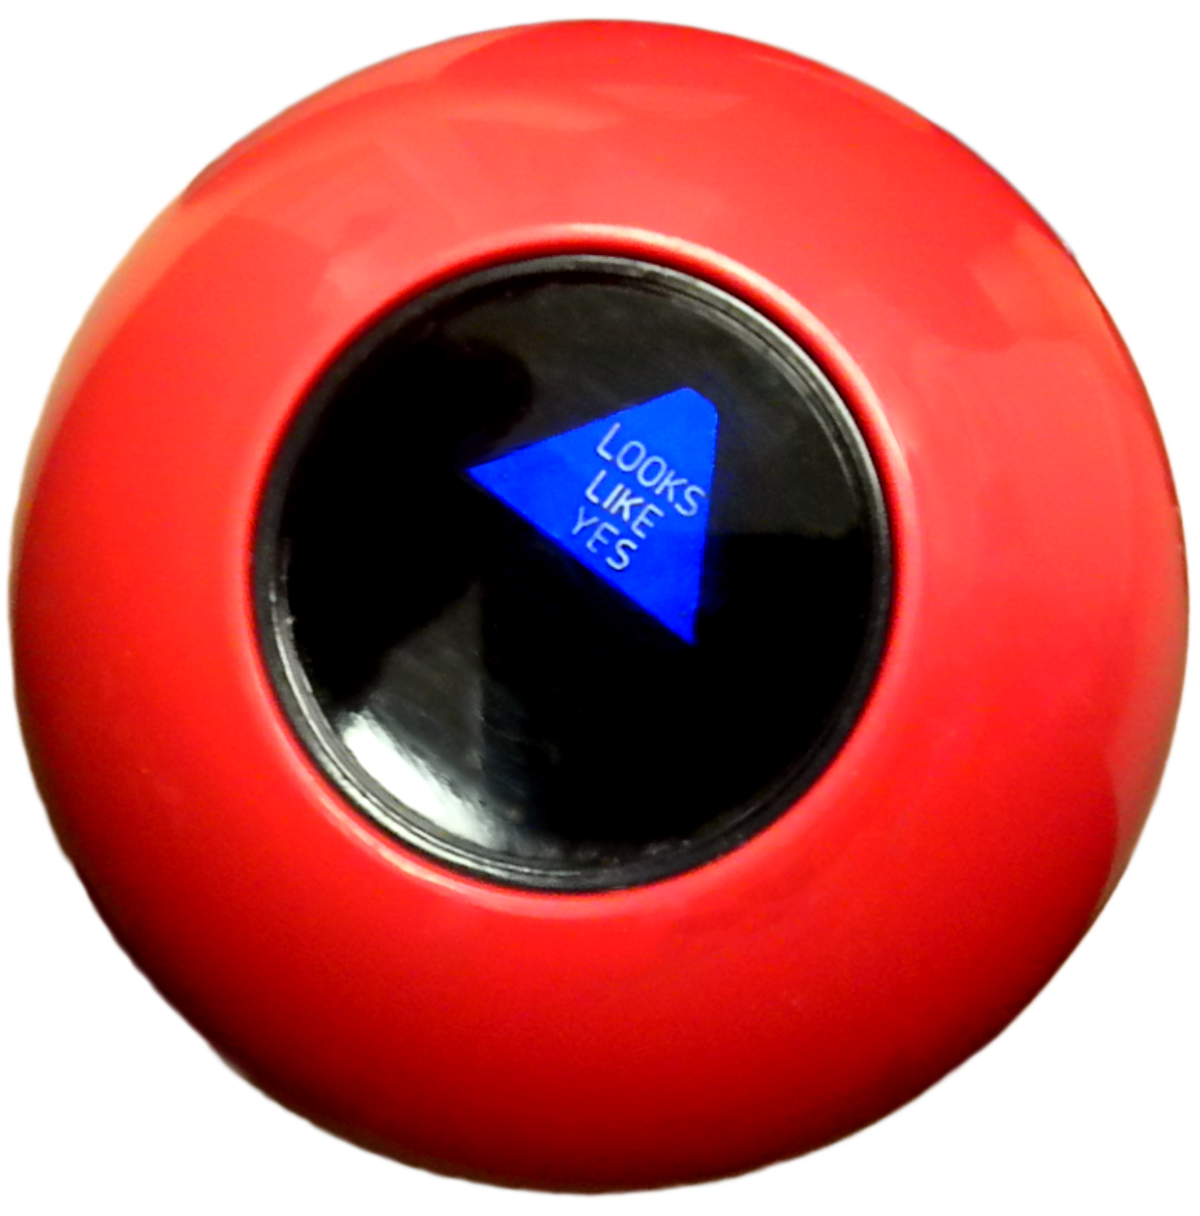 eIGHT bALL2.png